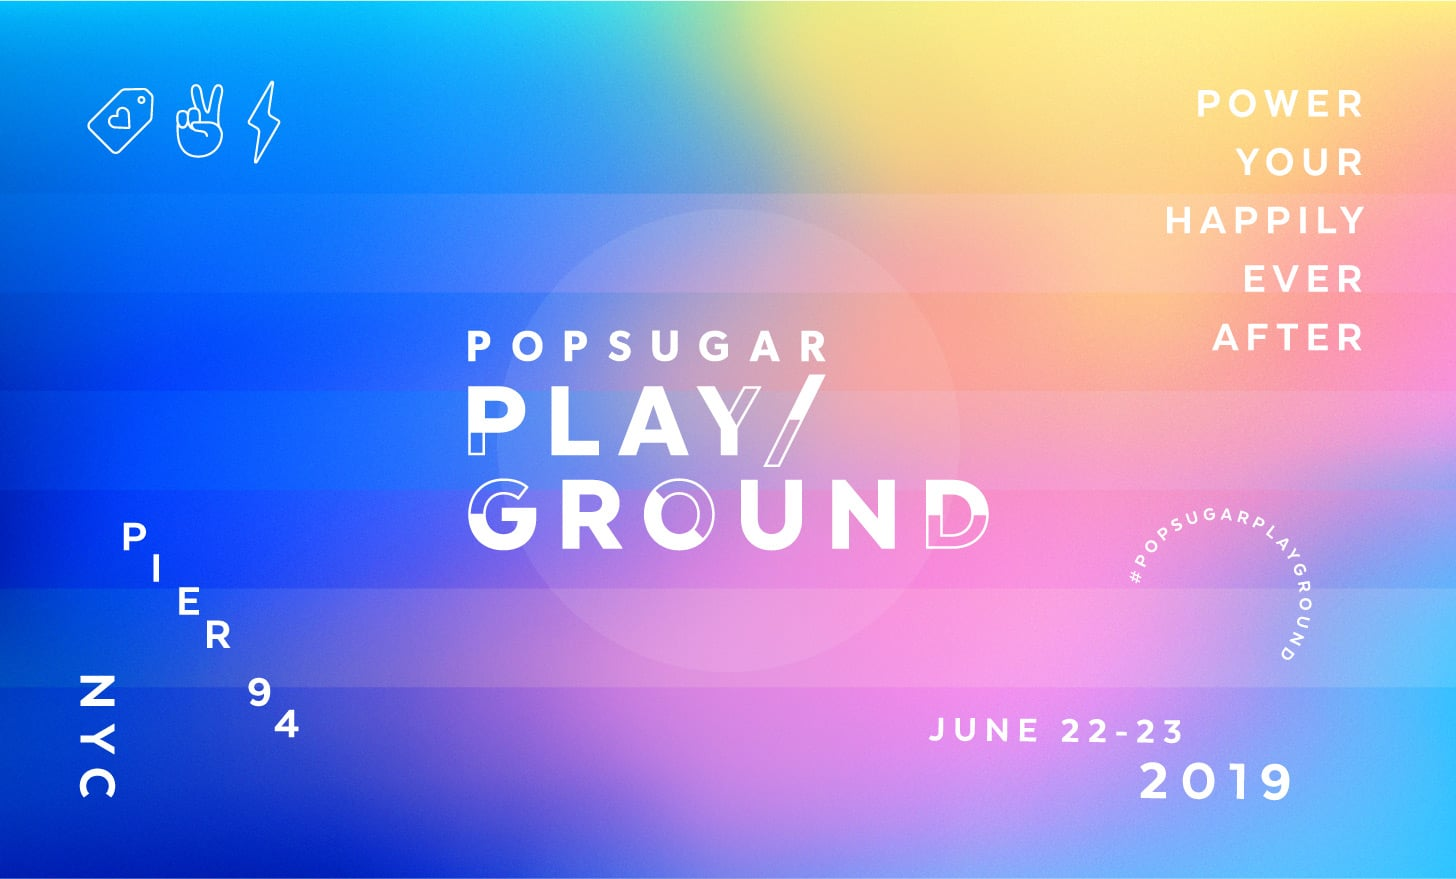 POPSUGAR PLAY/GROUND - Cover